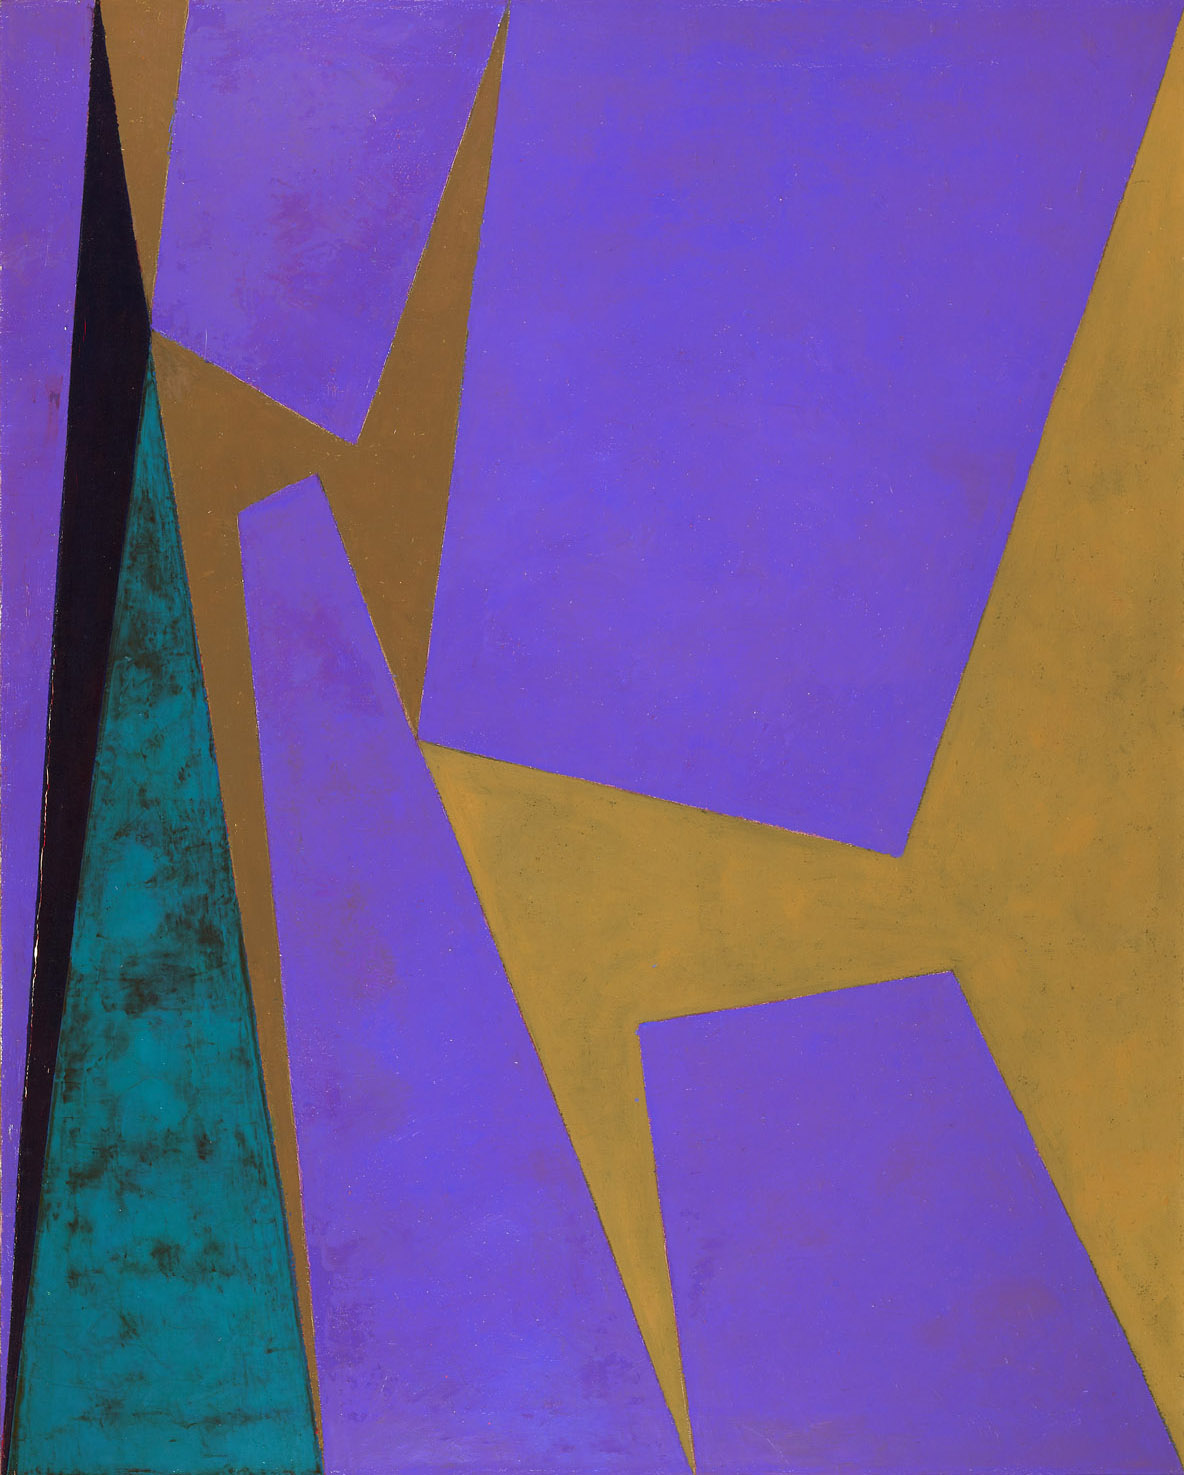 Magical Space Forms , 1955  oil on canvas 50 x 40 inches; 127 x 101.6 centimeters